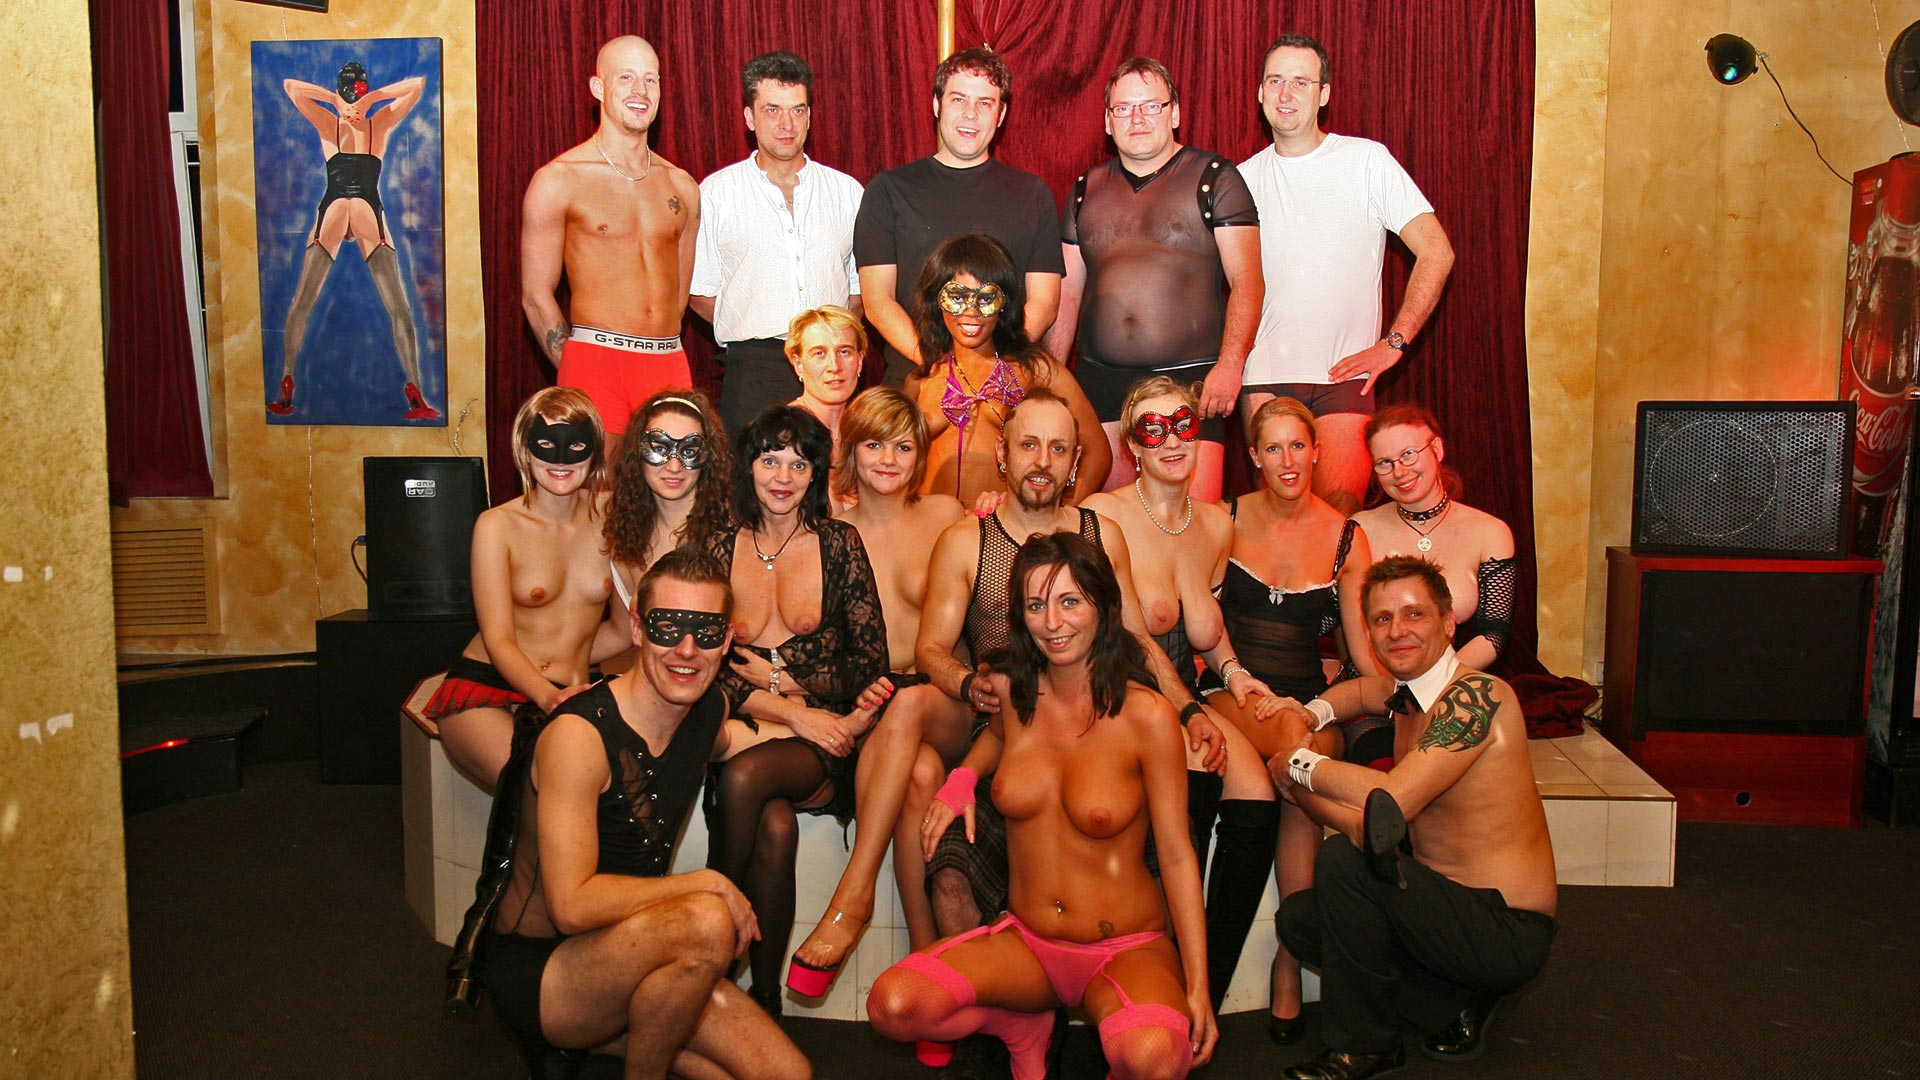 National swinger club association hotelsexvideo